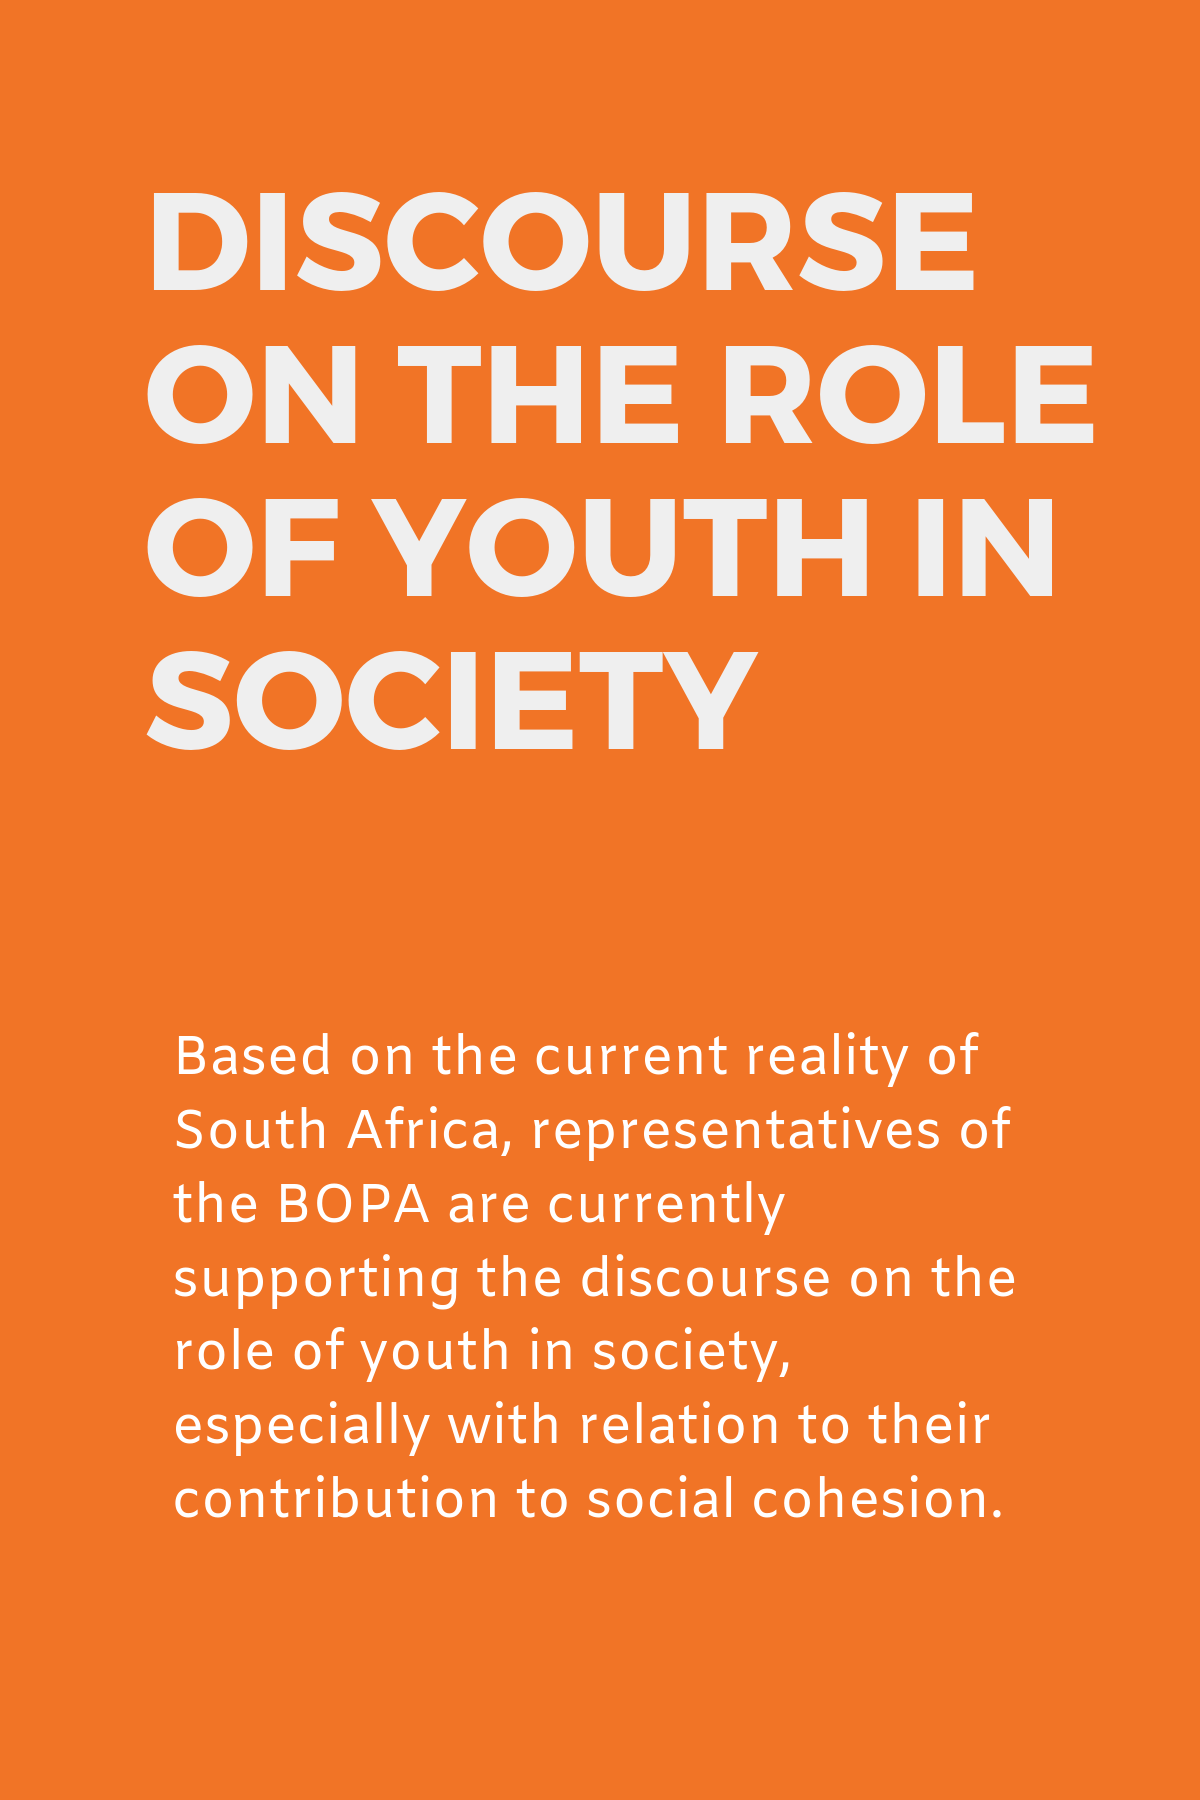 Discourse on the role of Youth in Society (1)